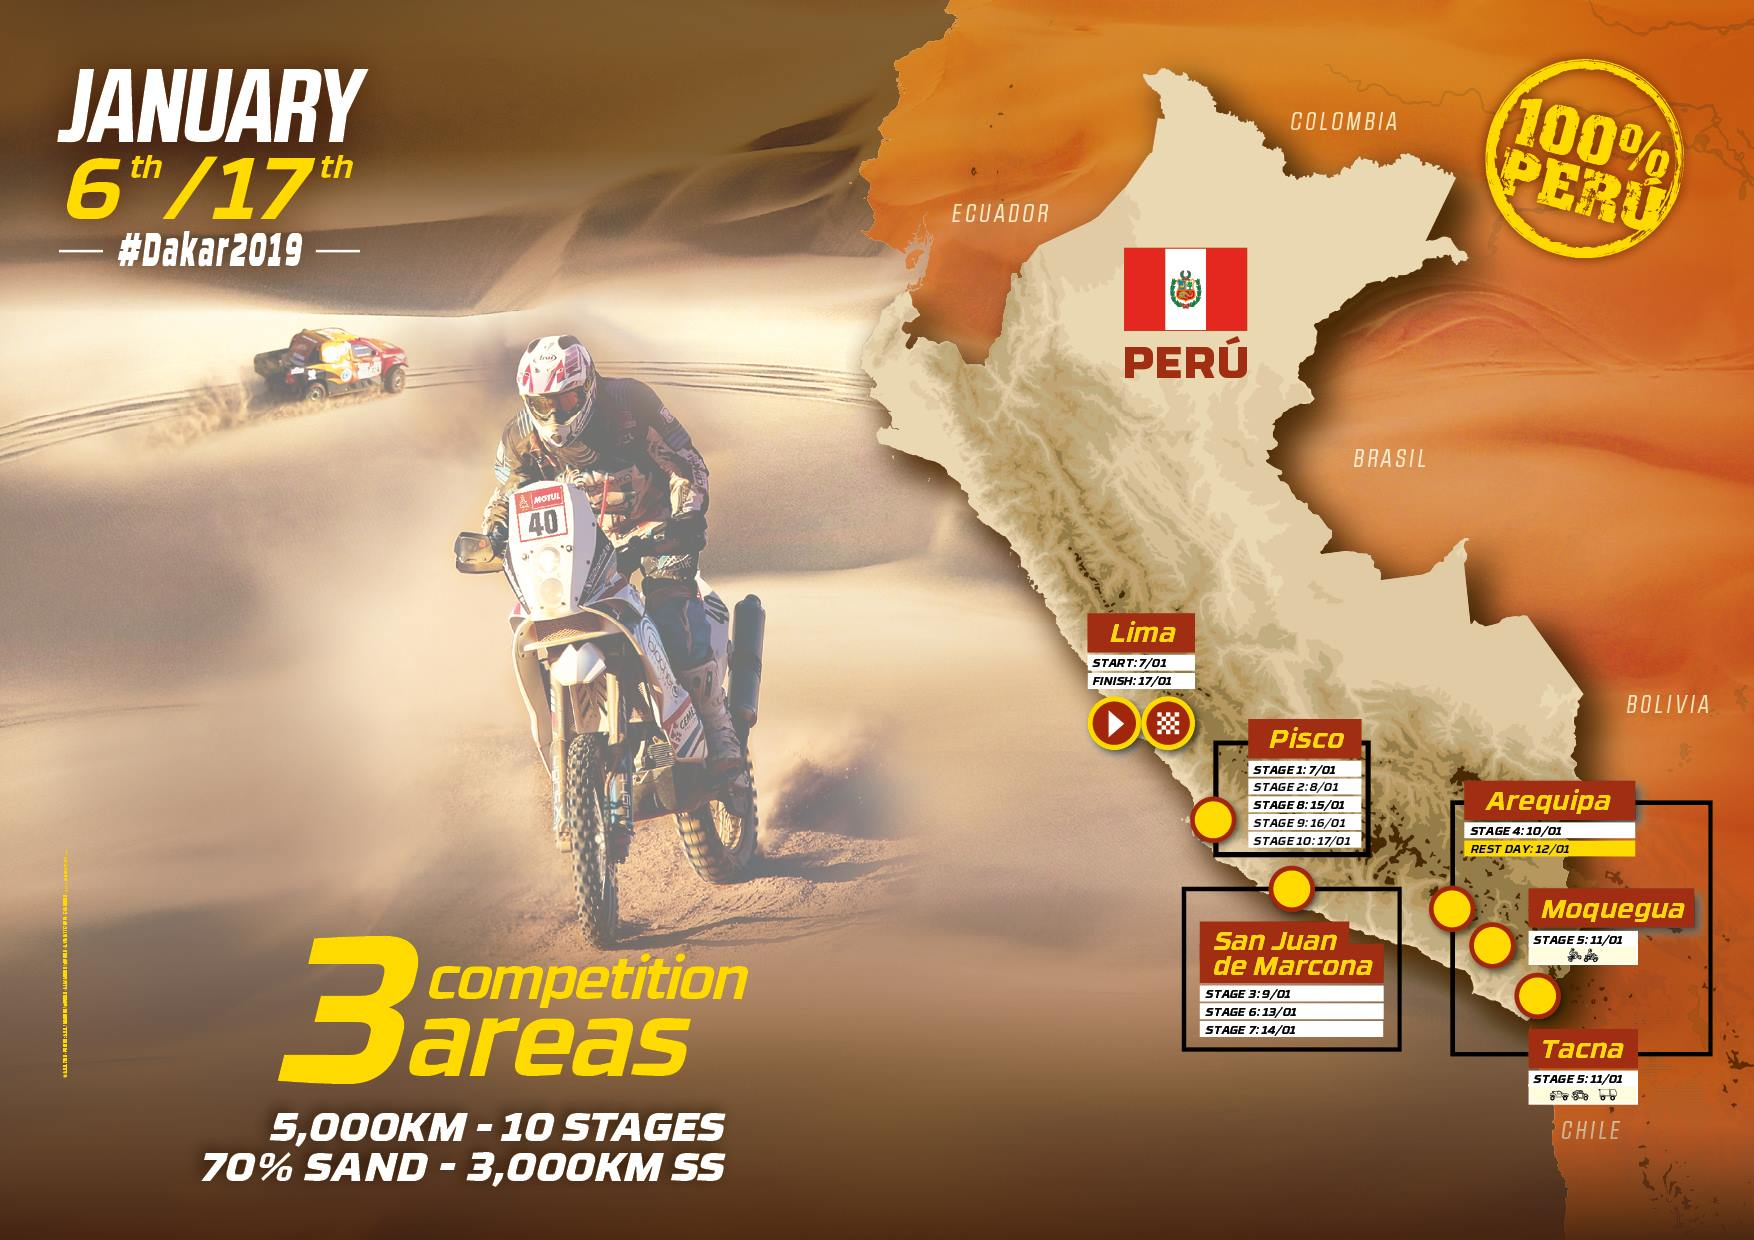 Dakar Rally 2019 route